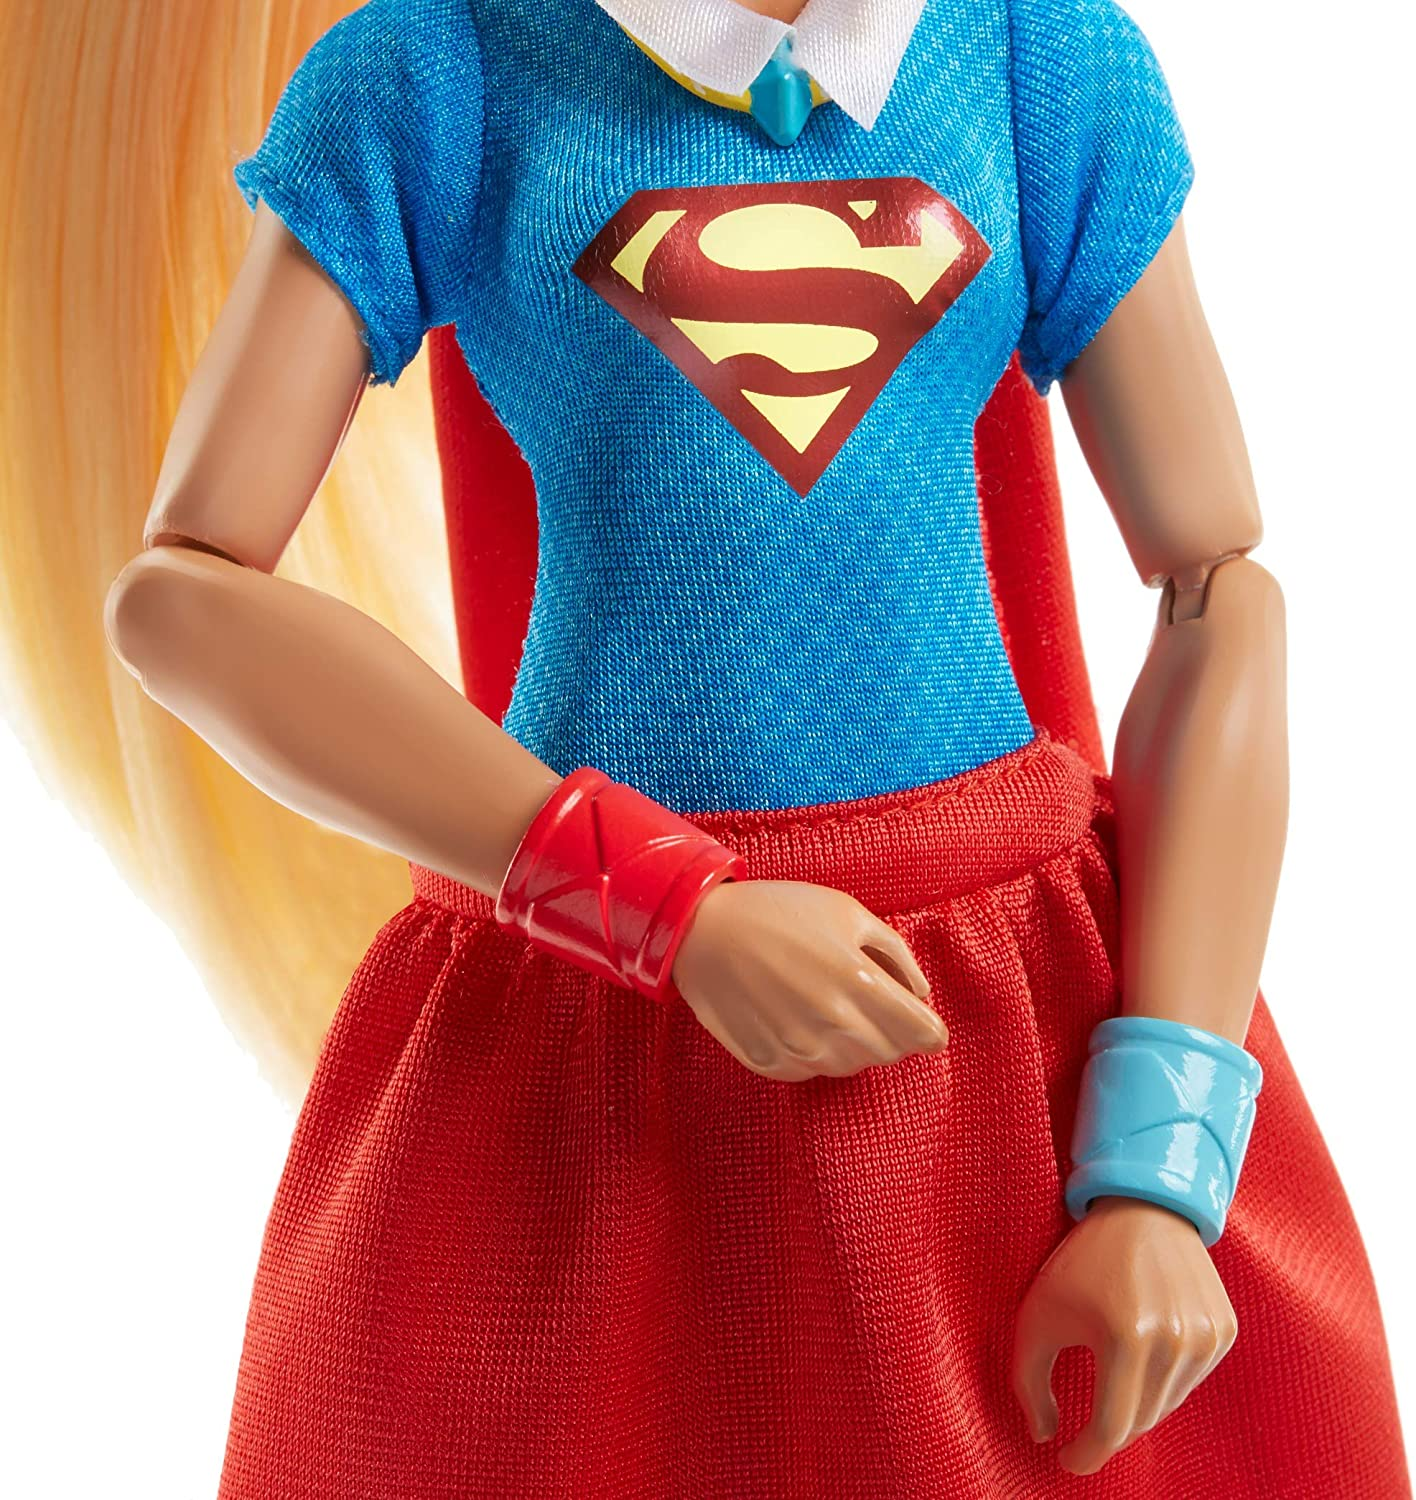 DC FVH35 Super Hero Filles Wonder Woman Transforming Poupée Multi-couleur